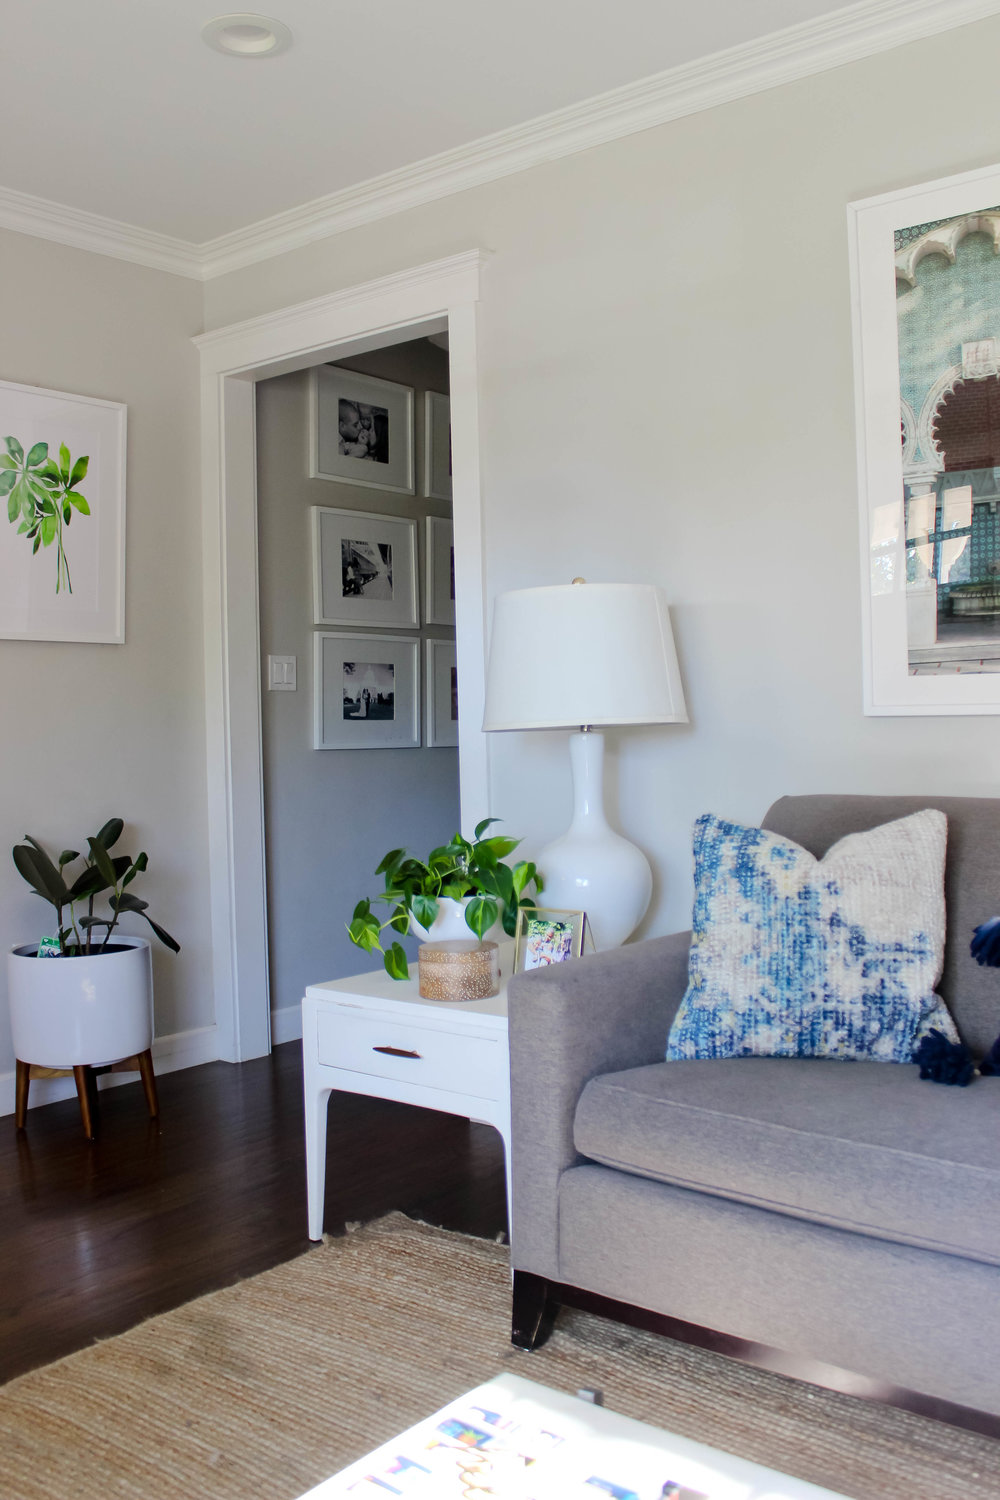 On f the areas in my living room that stayed the same was our front entry. Our living room front door opens directly into my home, and while I have no ...